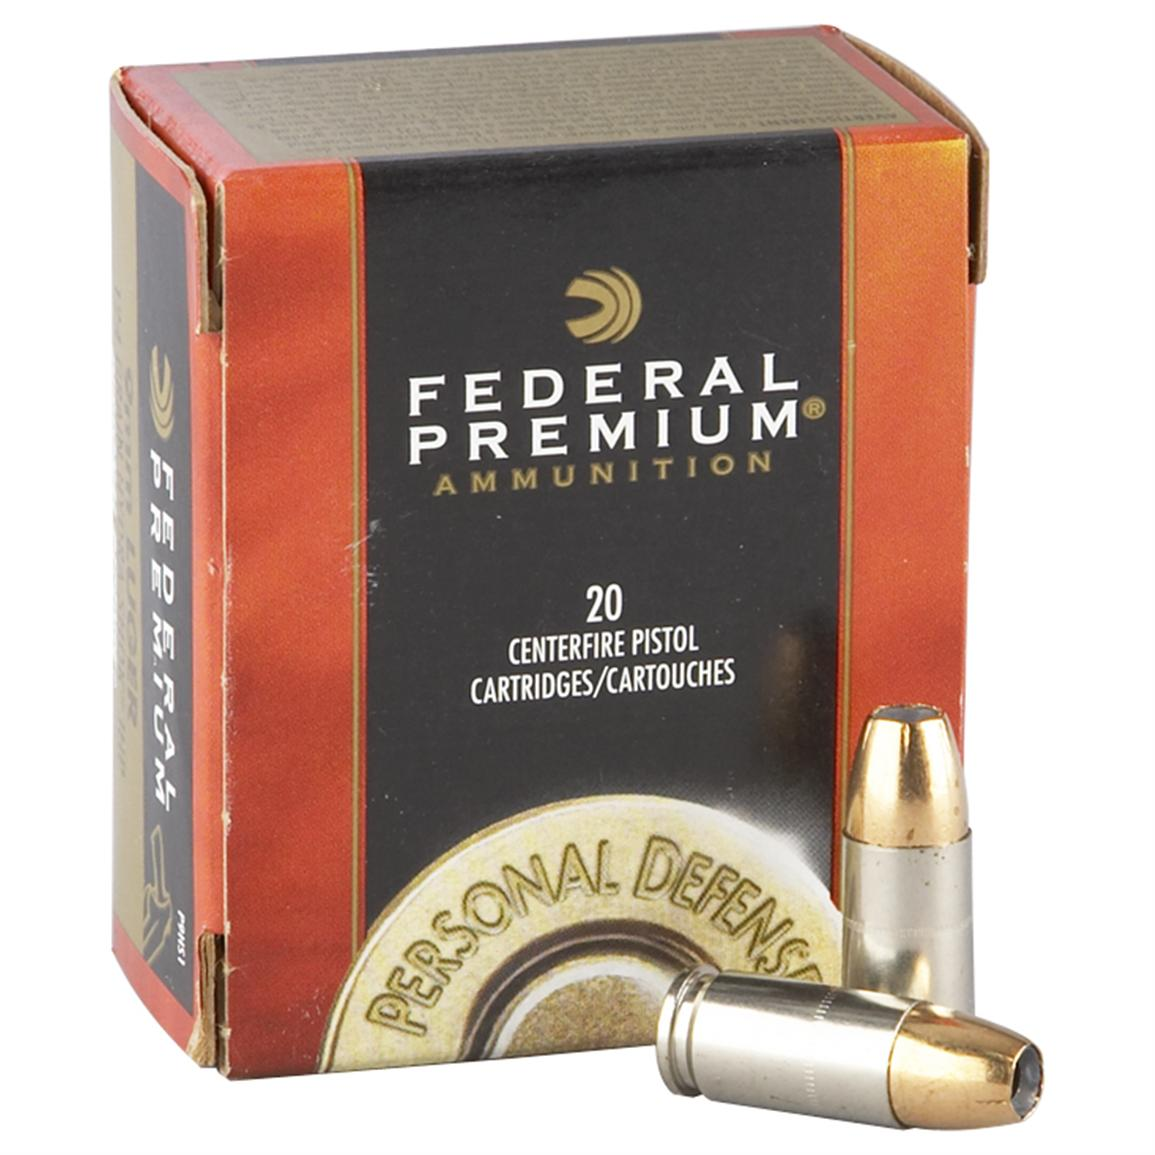 Federal Premium Hydra-Shok, 9mm Luger, HSJHP, 147 Grain, 20 Rounds